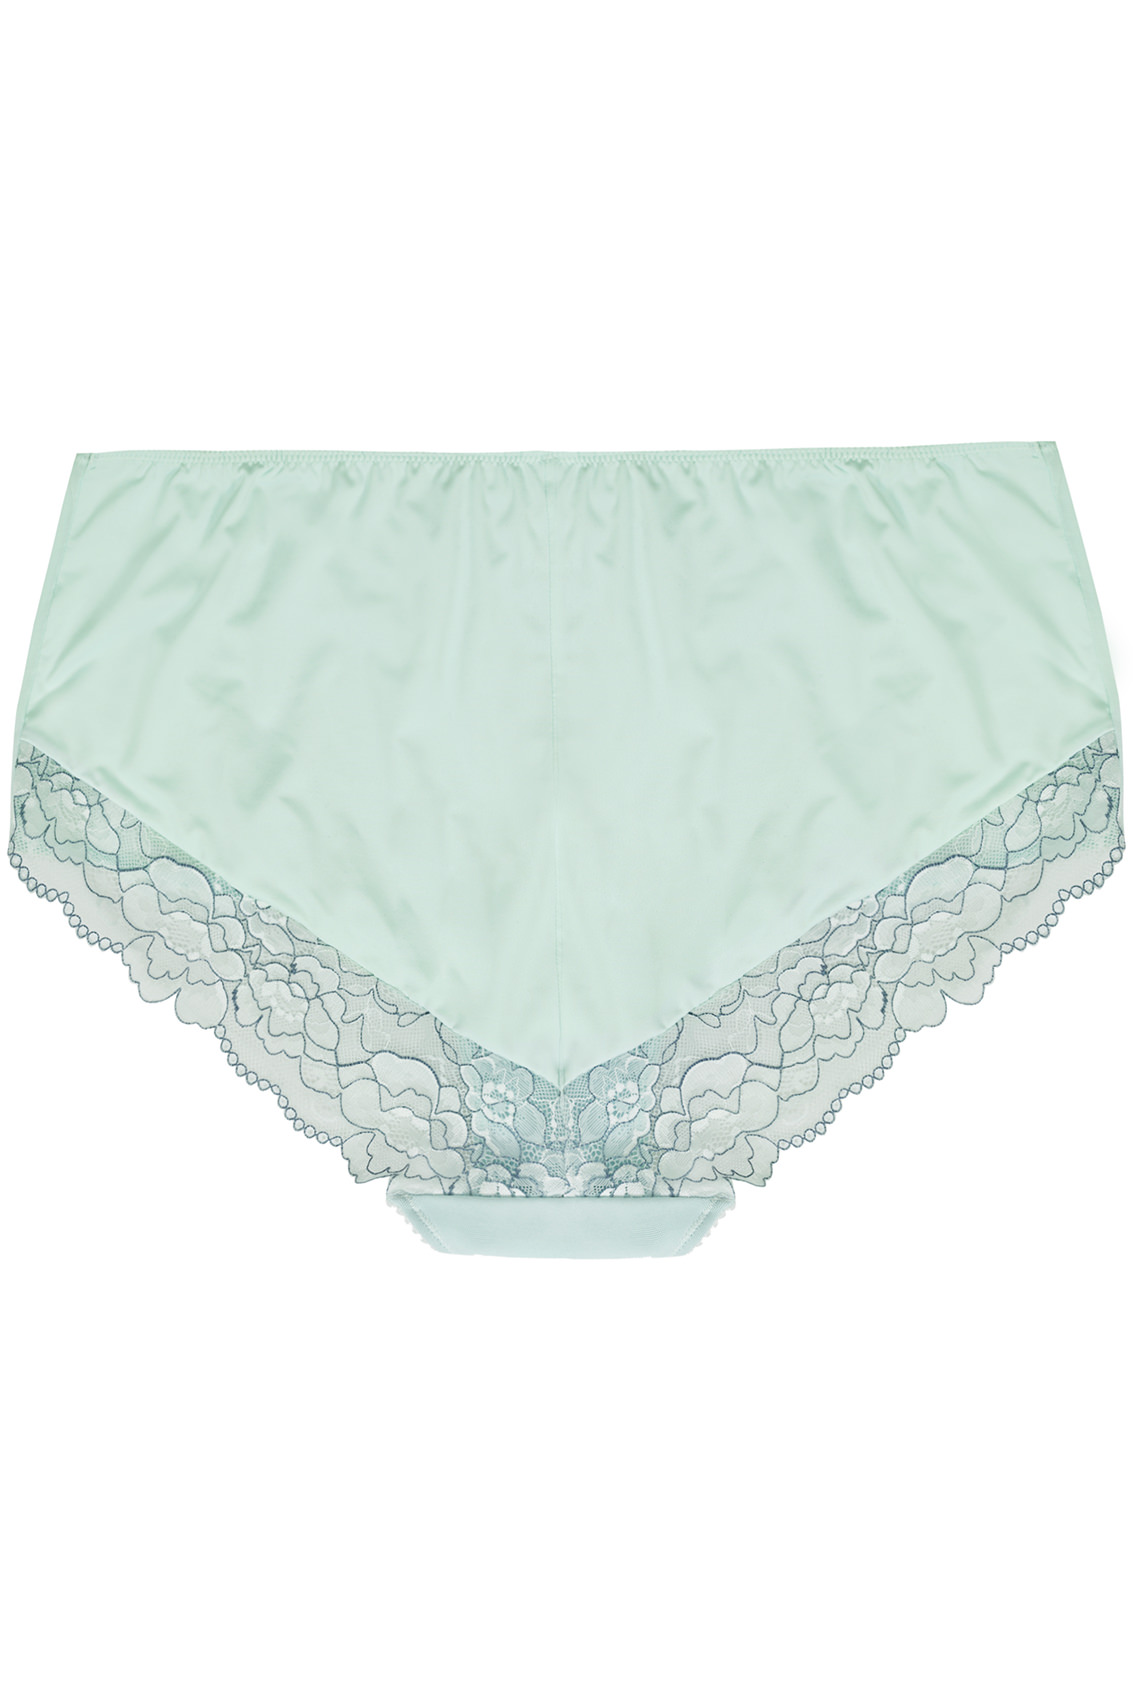 mint green blue two tone mesh brief with floral lace detail plus size 14 to 36. Black Bedroom Furniture Sets. Home Design Ideas